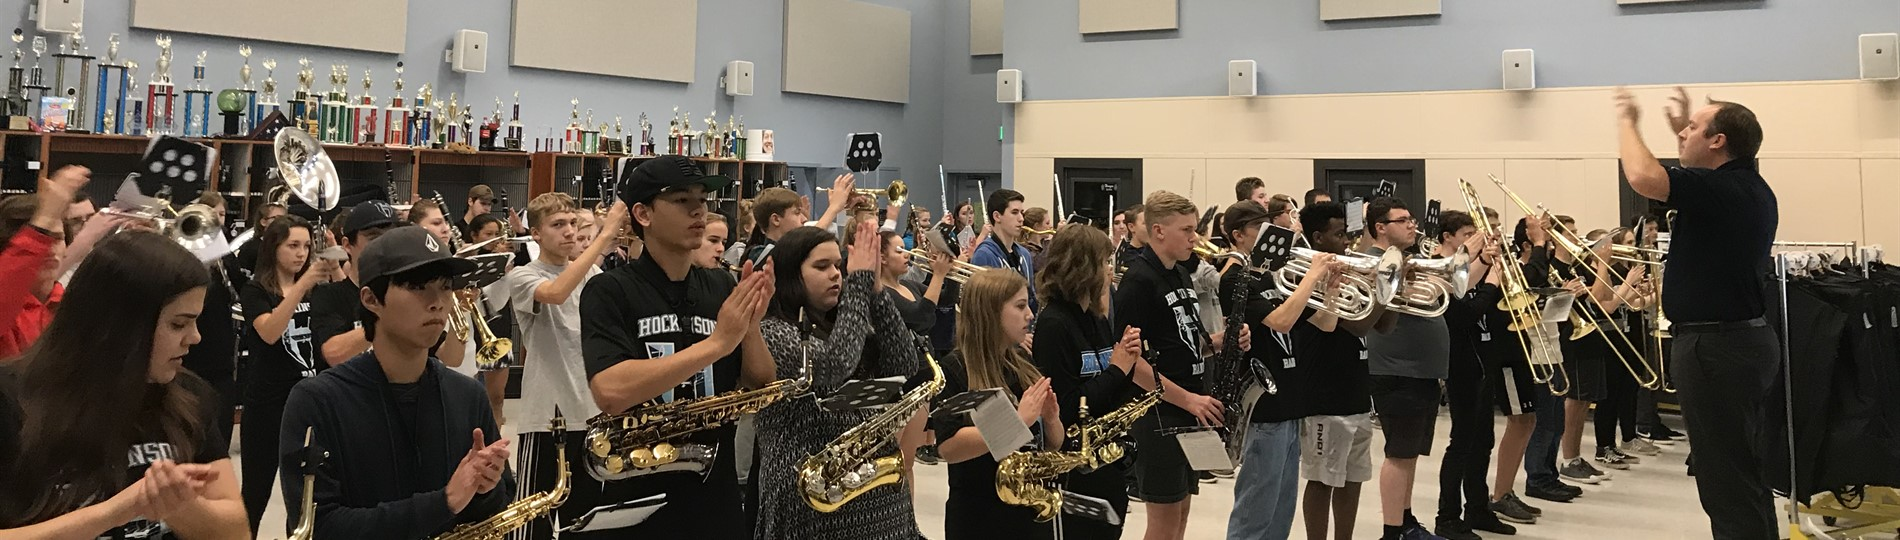 High school band members playing and clapping